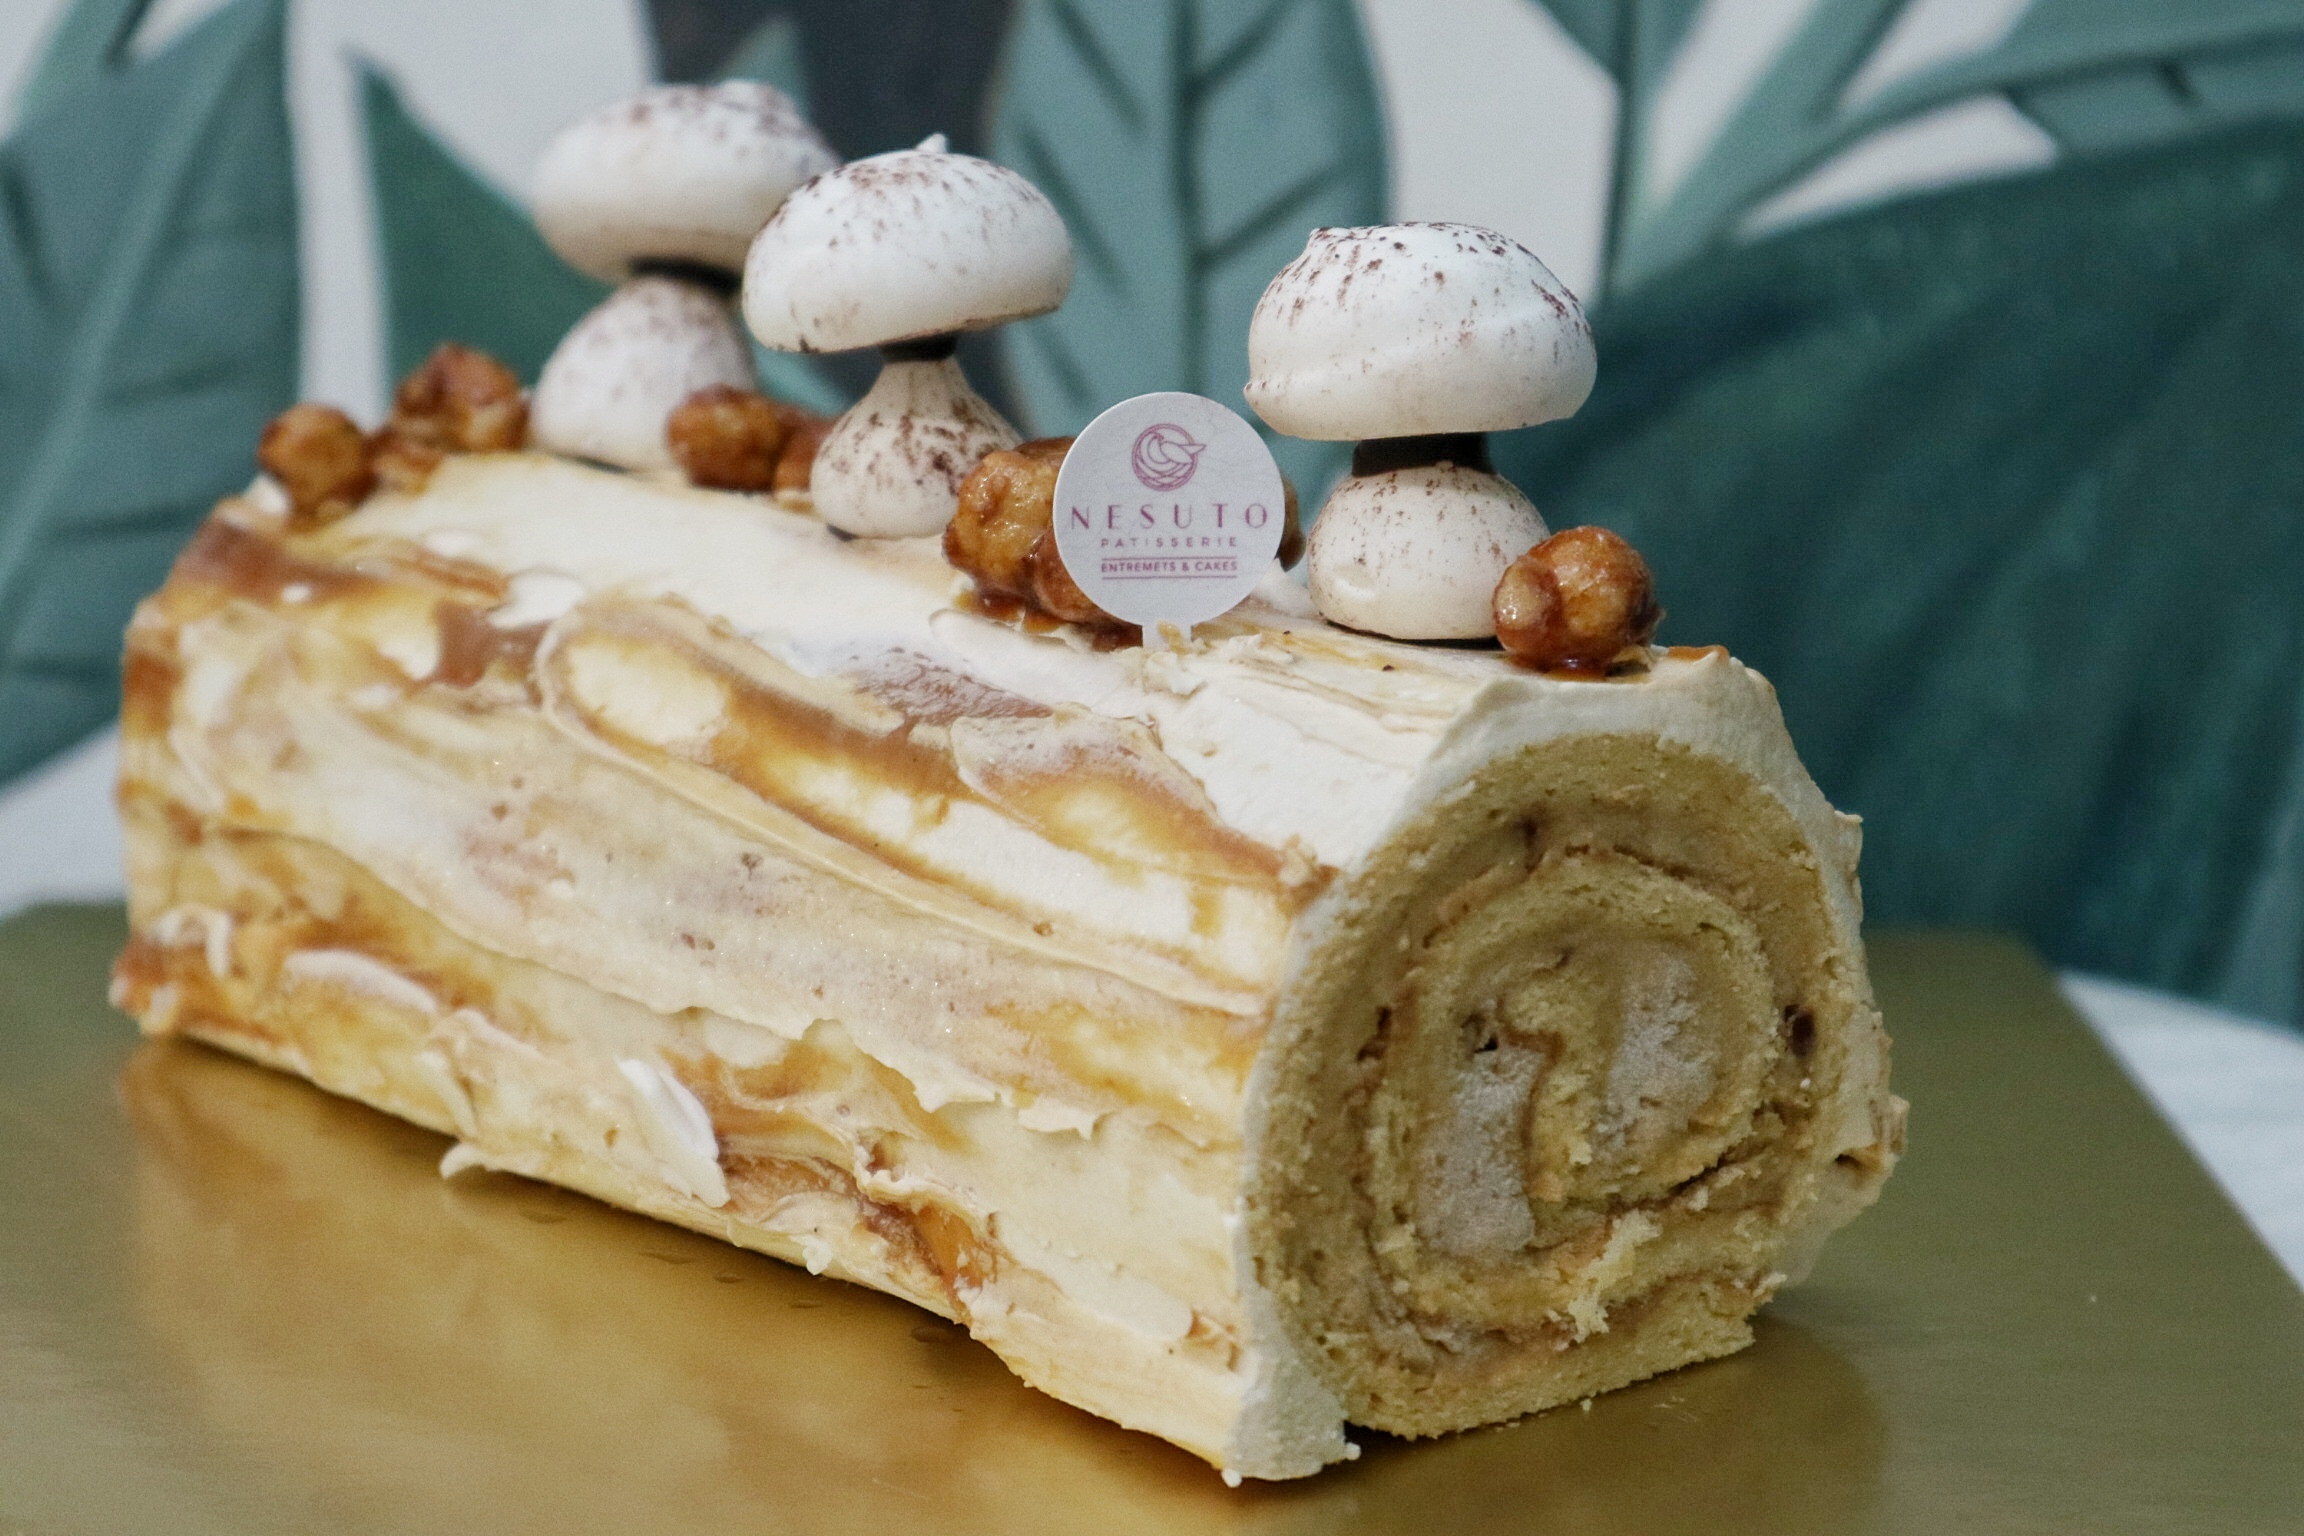 Nesuto: Launches New Afternoon High Tea Set & Exquisite Christmas Log Cakes